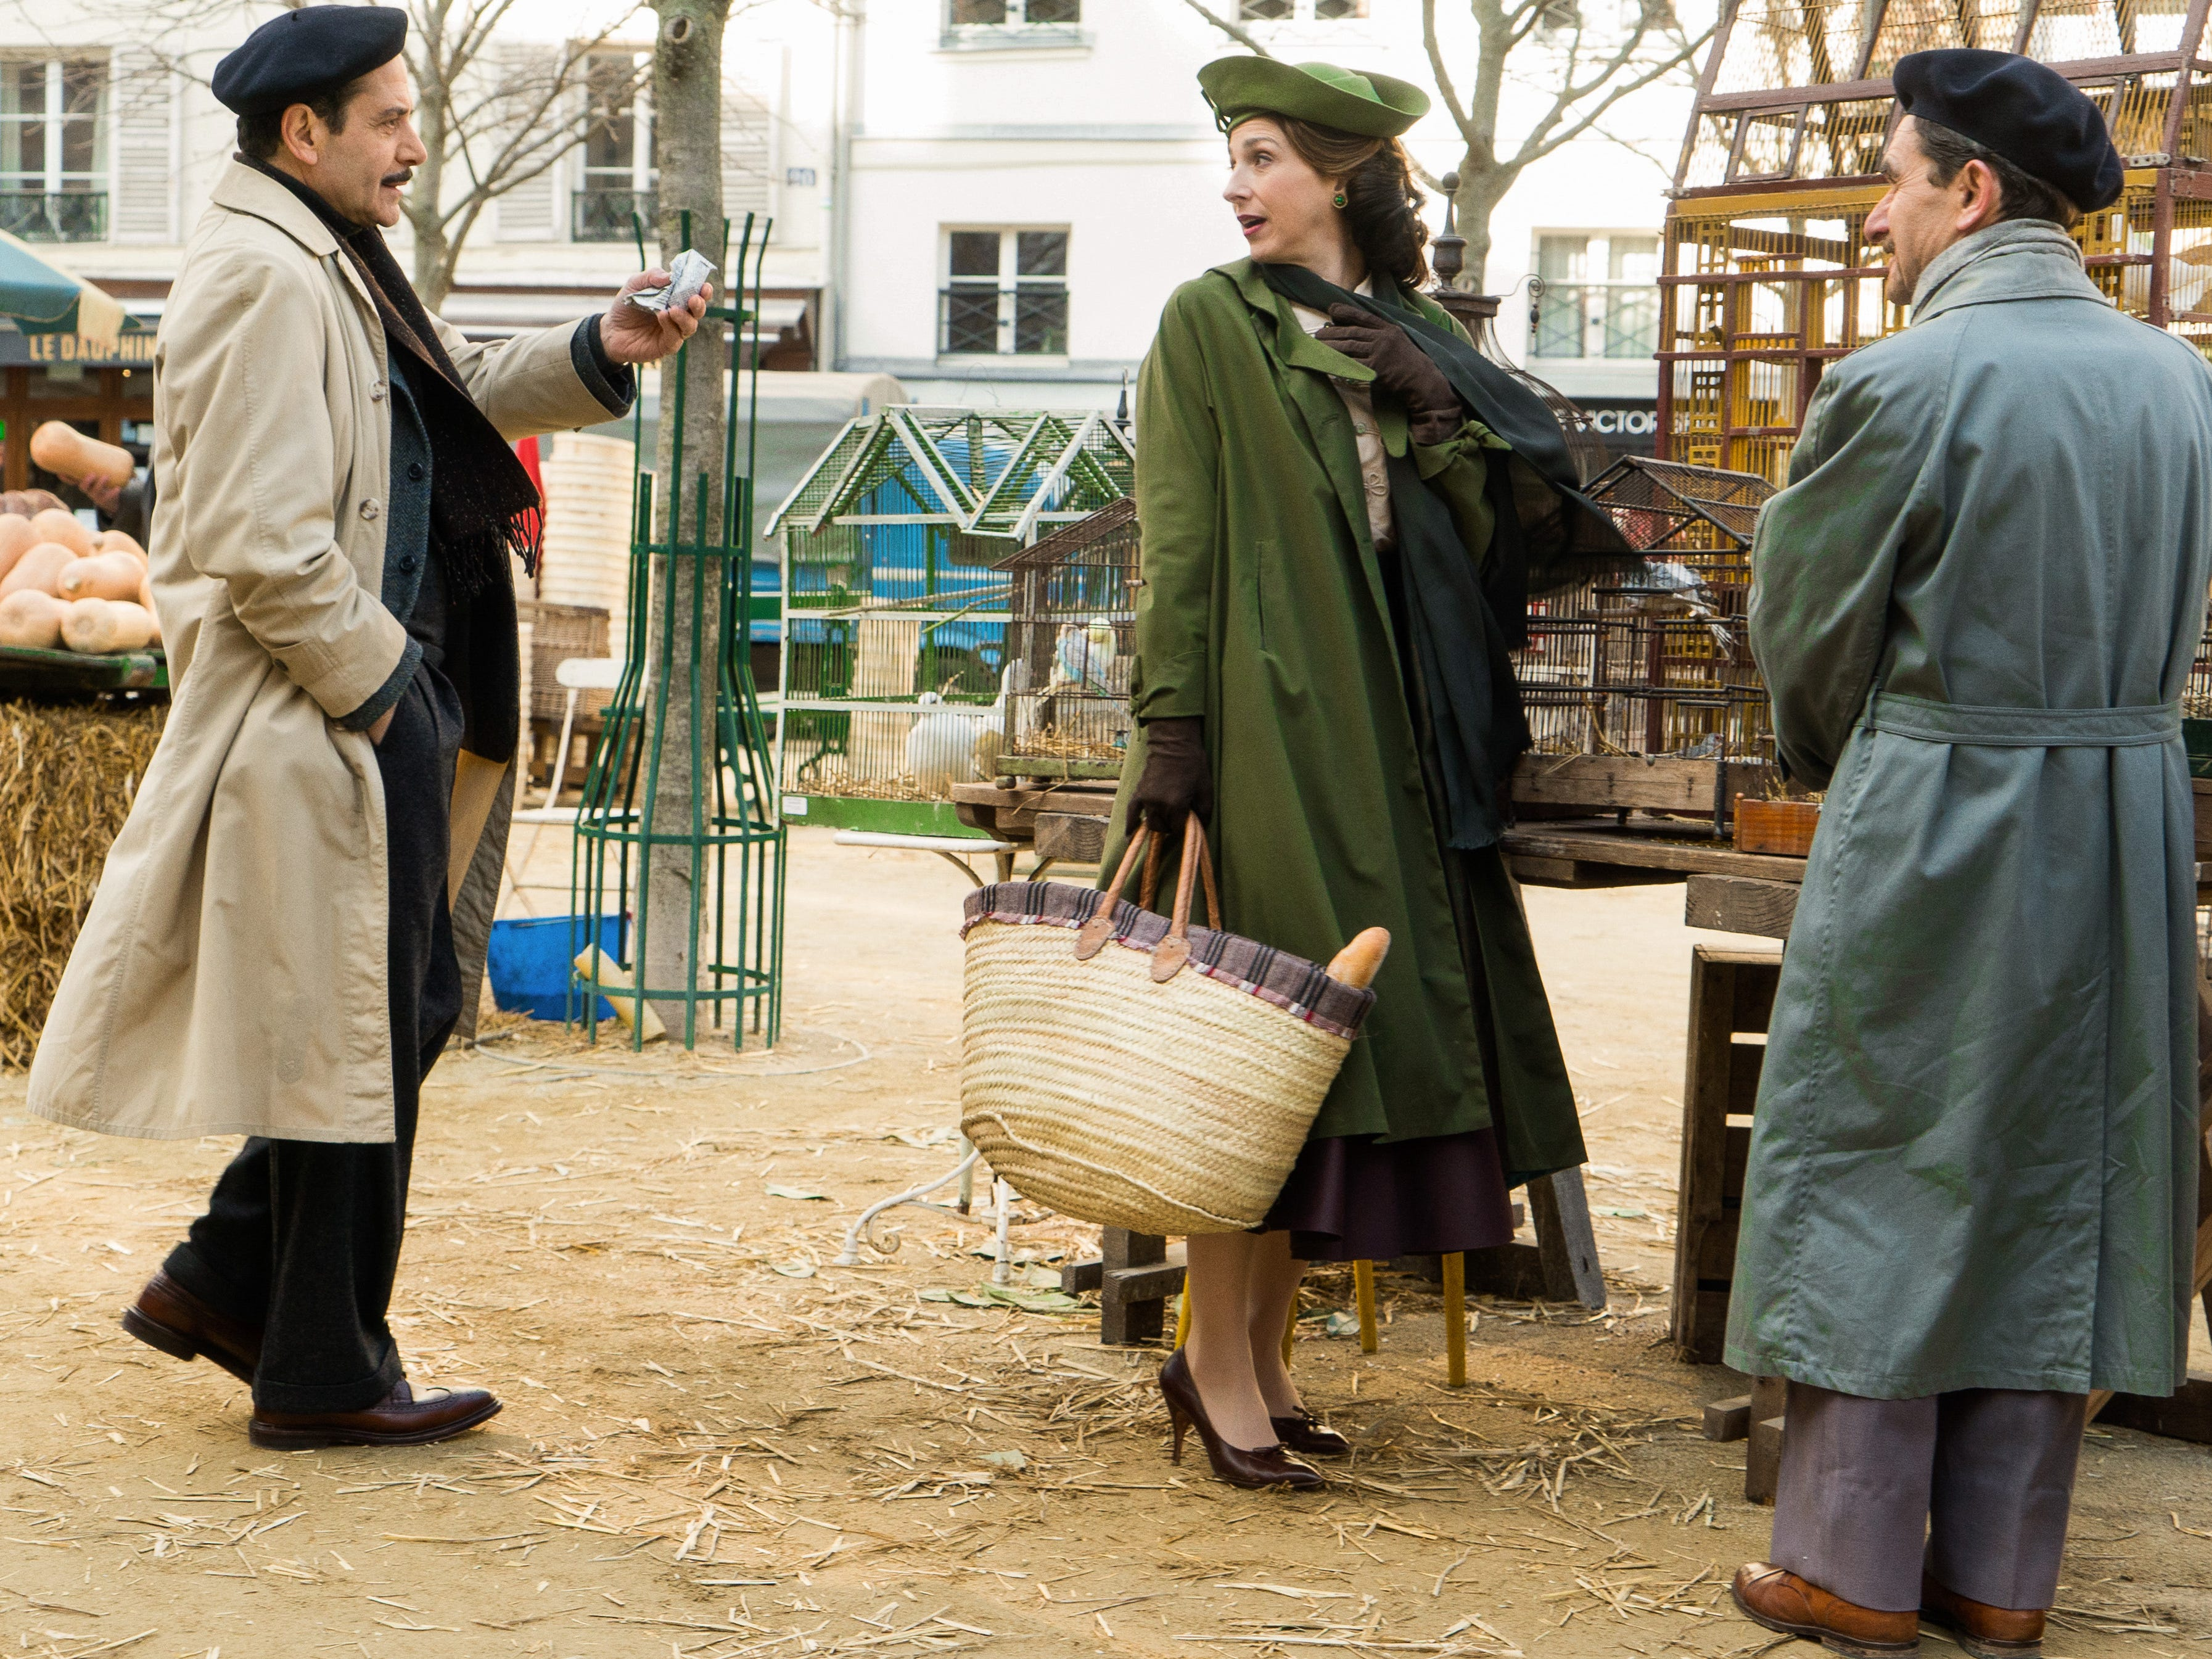 """Tony Shalhoub plays Abraham """"Abe"""" Weissman and Marin Hinkle is Rose Weissman, the title character's parents. in """"The Marvelous Mrs. Maisel."""""""